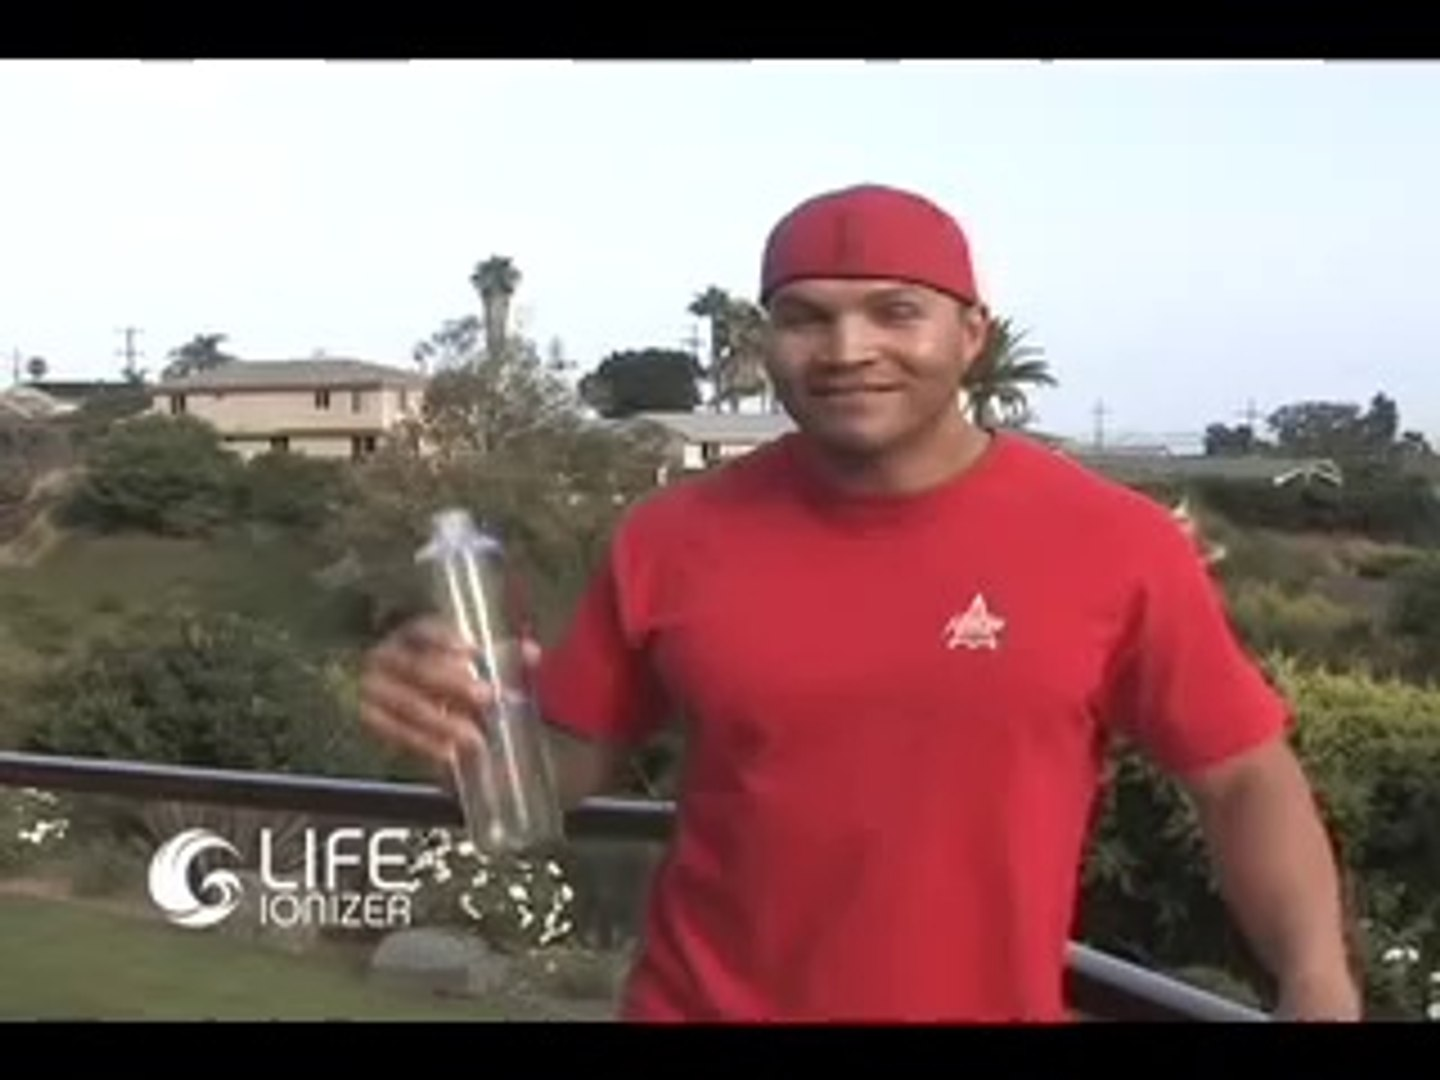 Life Ionizer Review & Testimonials from NFL Players